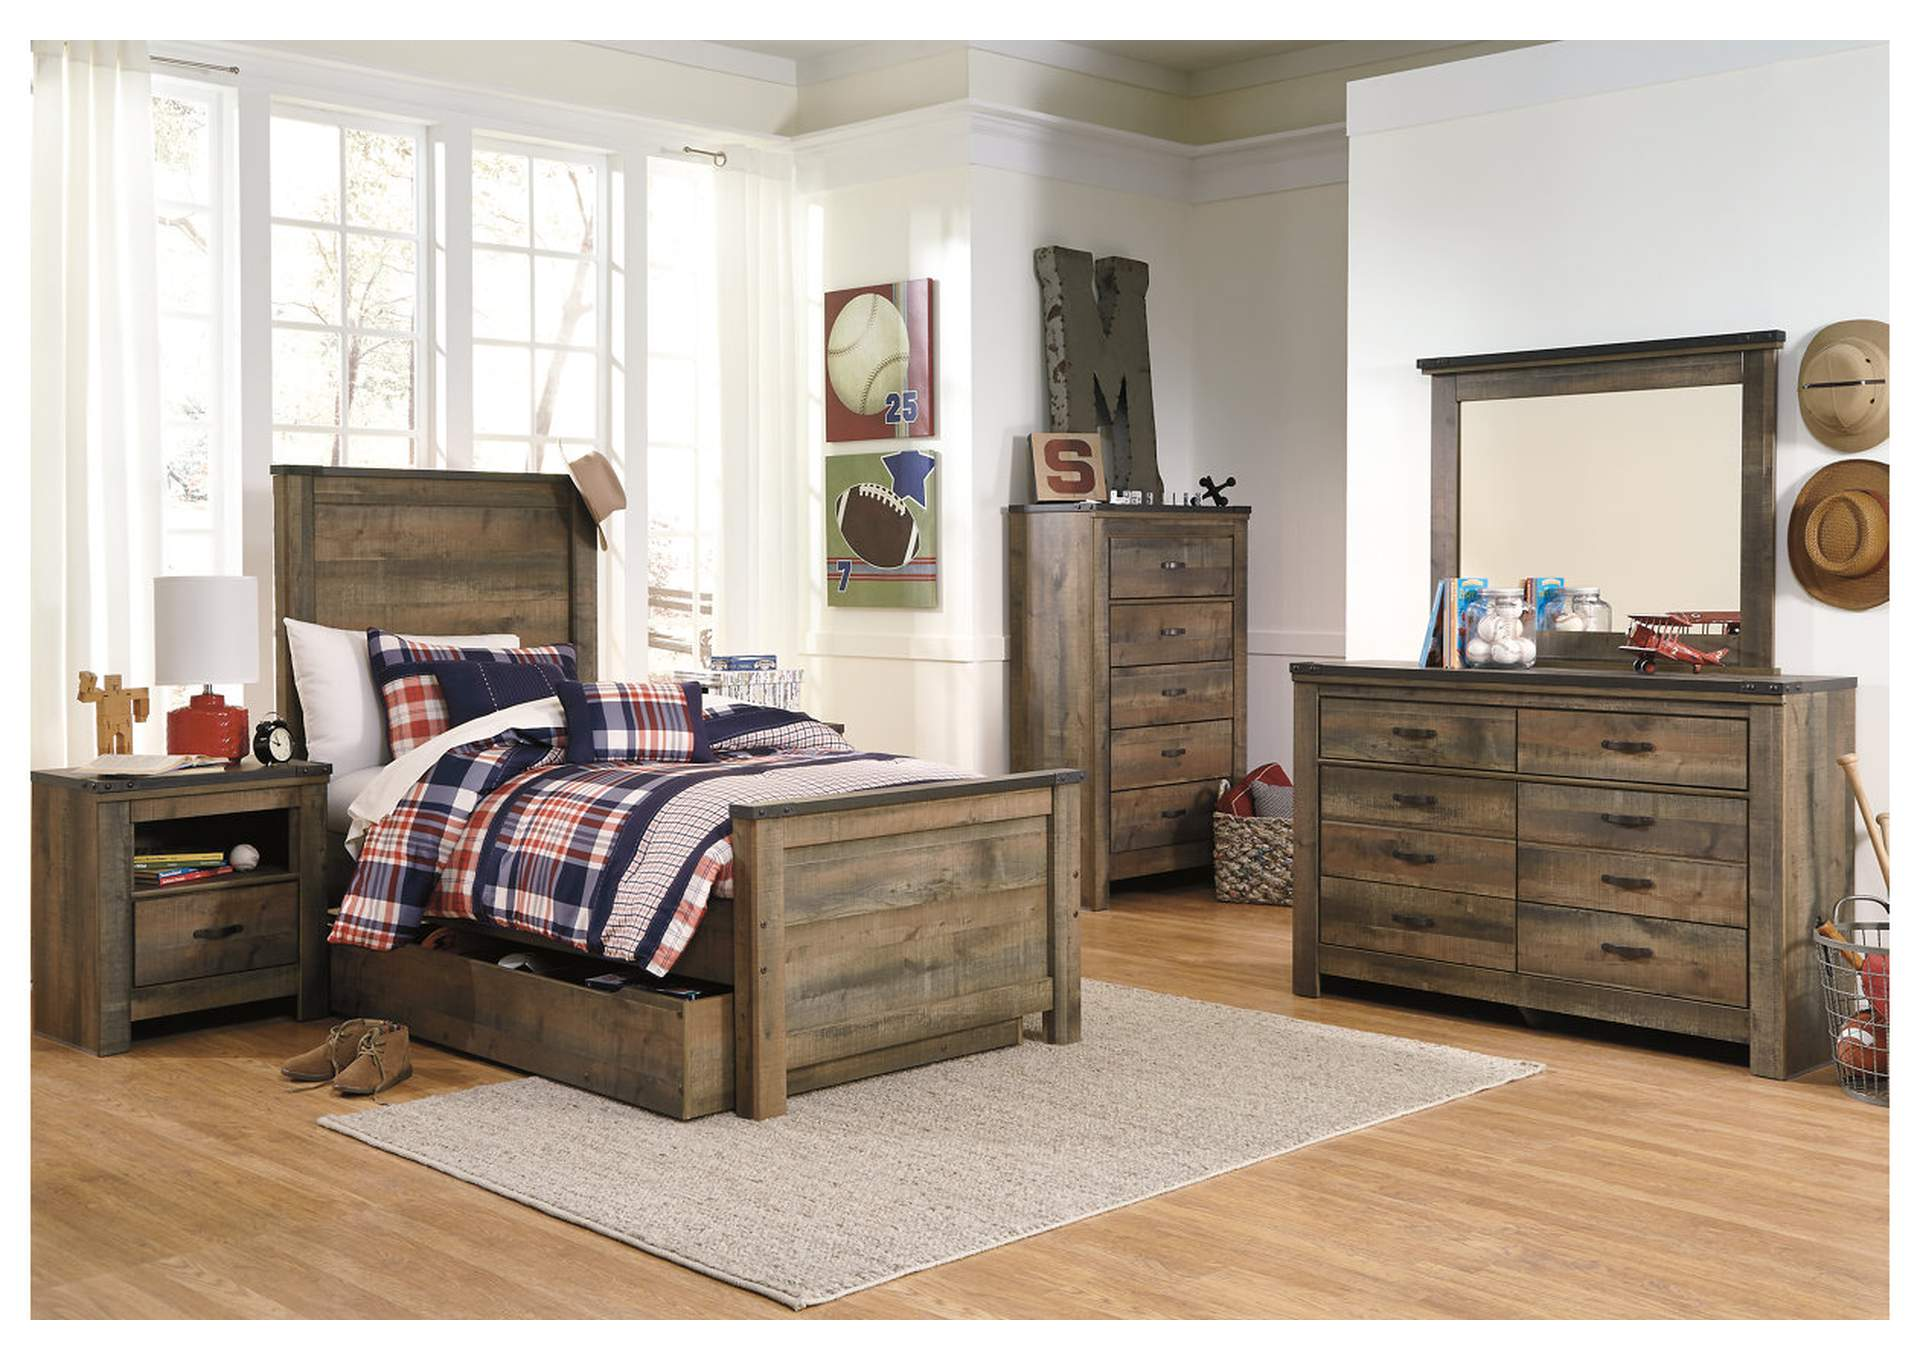 Trinell Brown Twin Panel Storage Bed w/Dresser, Mirror, Drawer Chest & Nightstand,Signature Design by Ashley